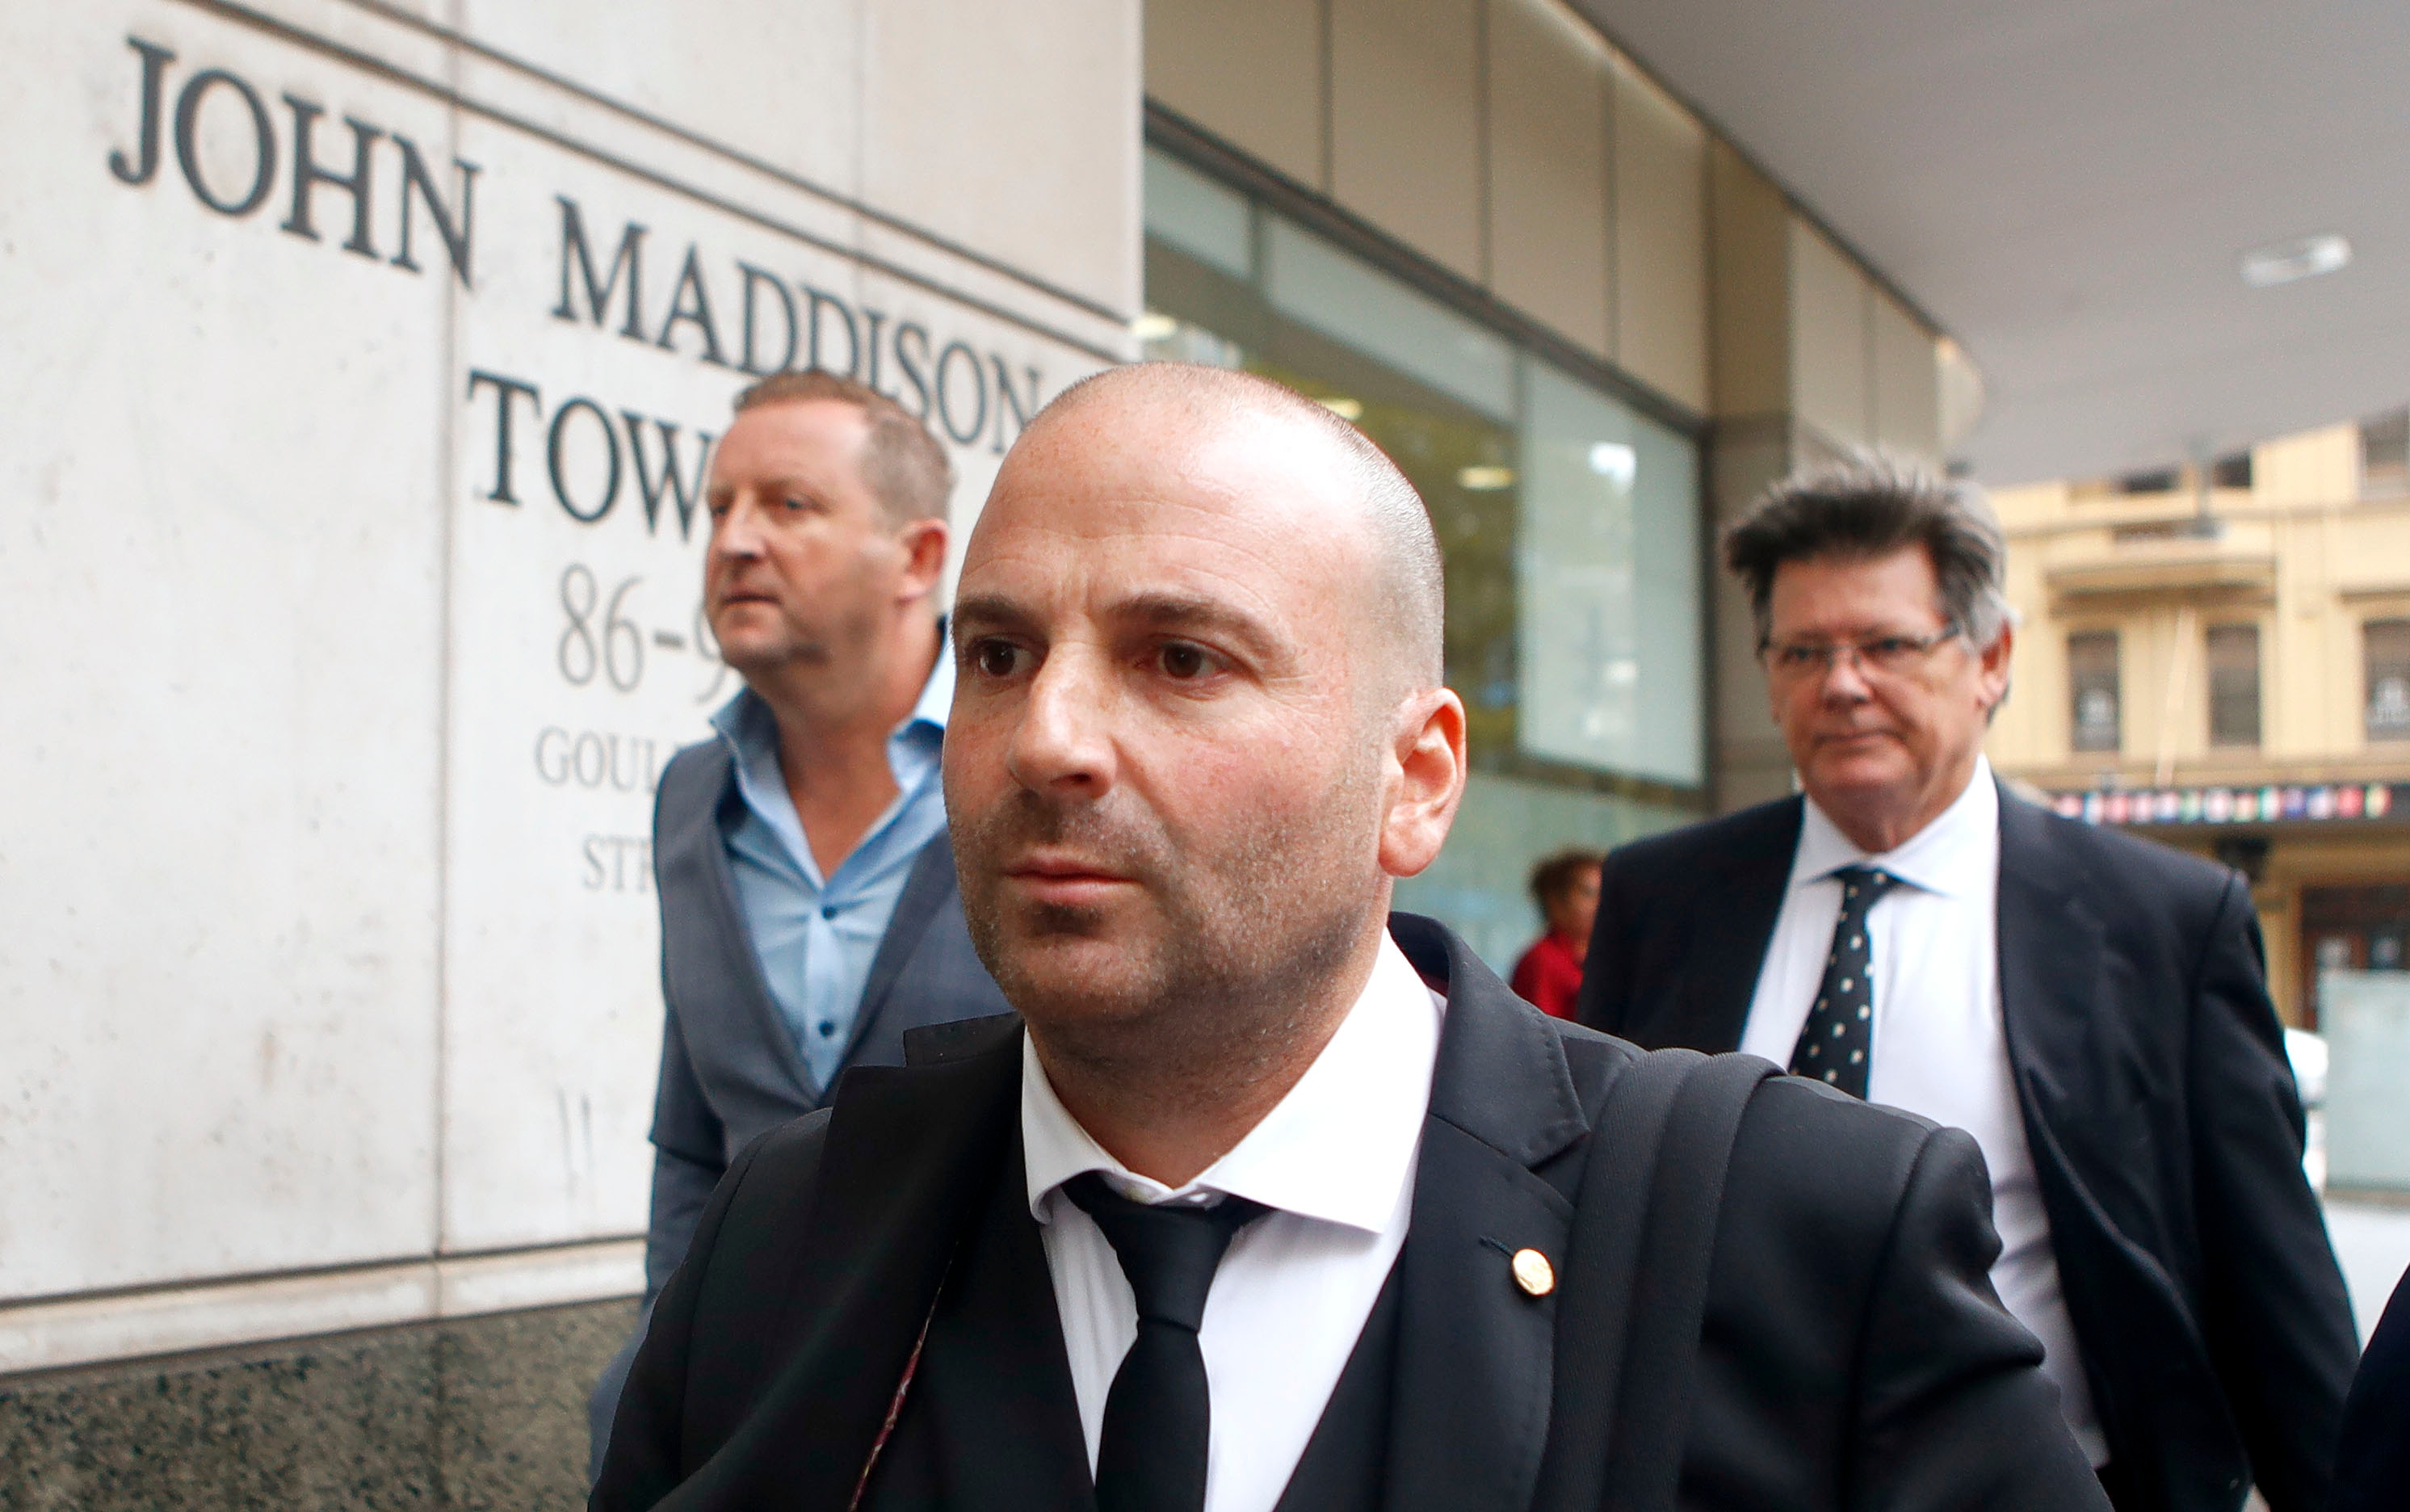 George Calombaris and Made Establishment Admit to $7.8 Million Staff Underpayment